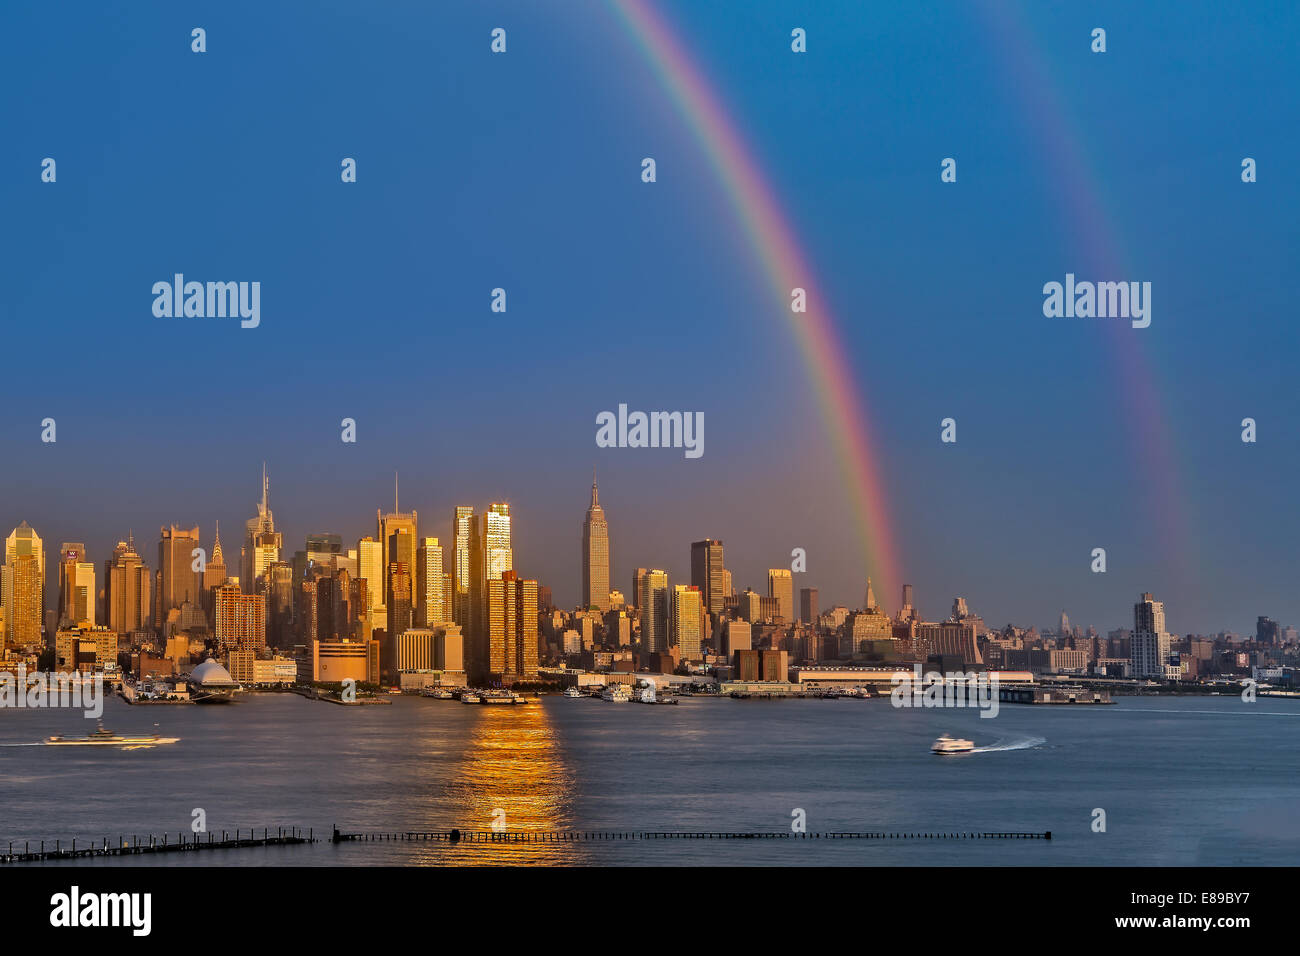 Double Rainbows emerge after a summer rain shower over the New York City Skyline at sunset. - Stock Image